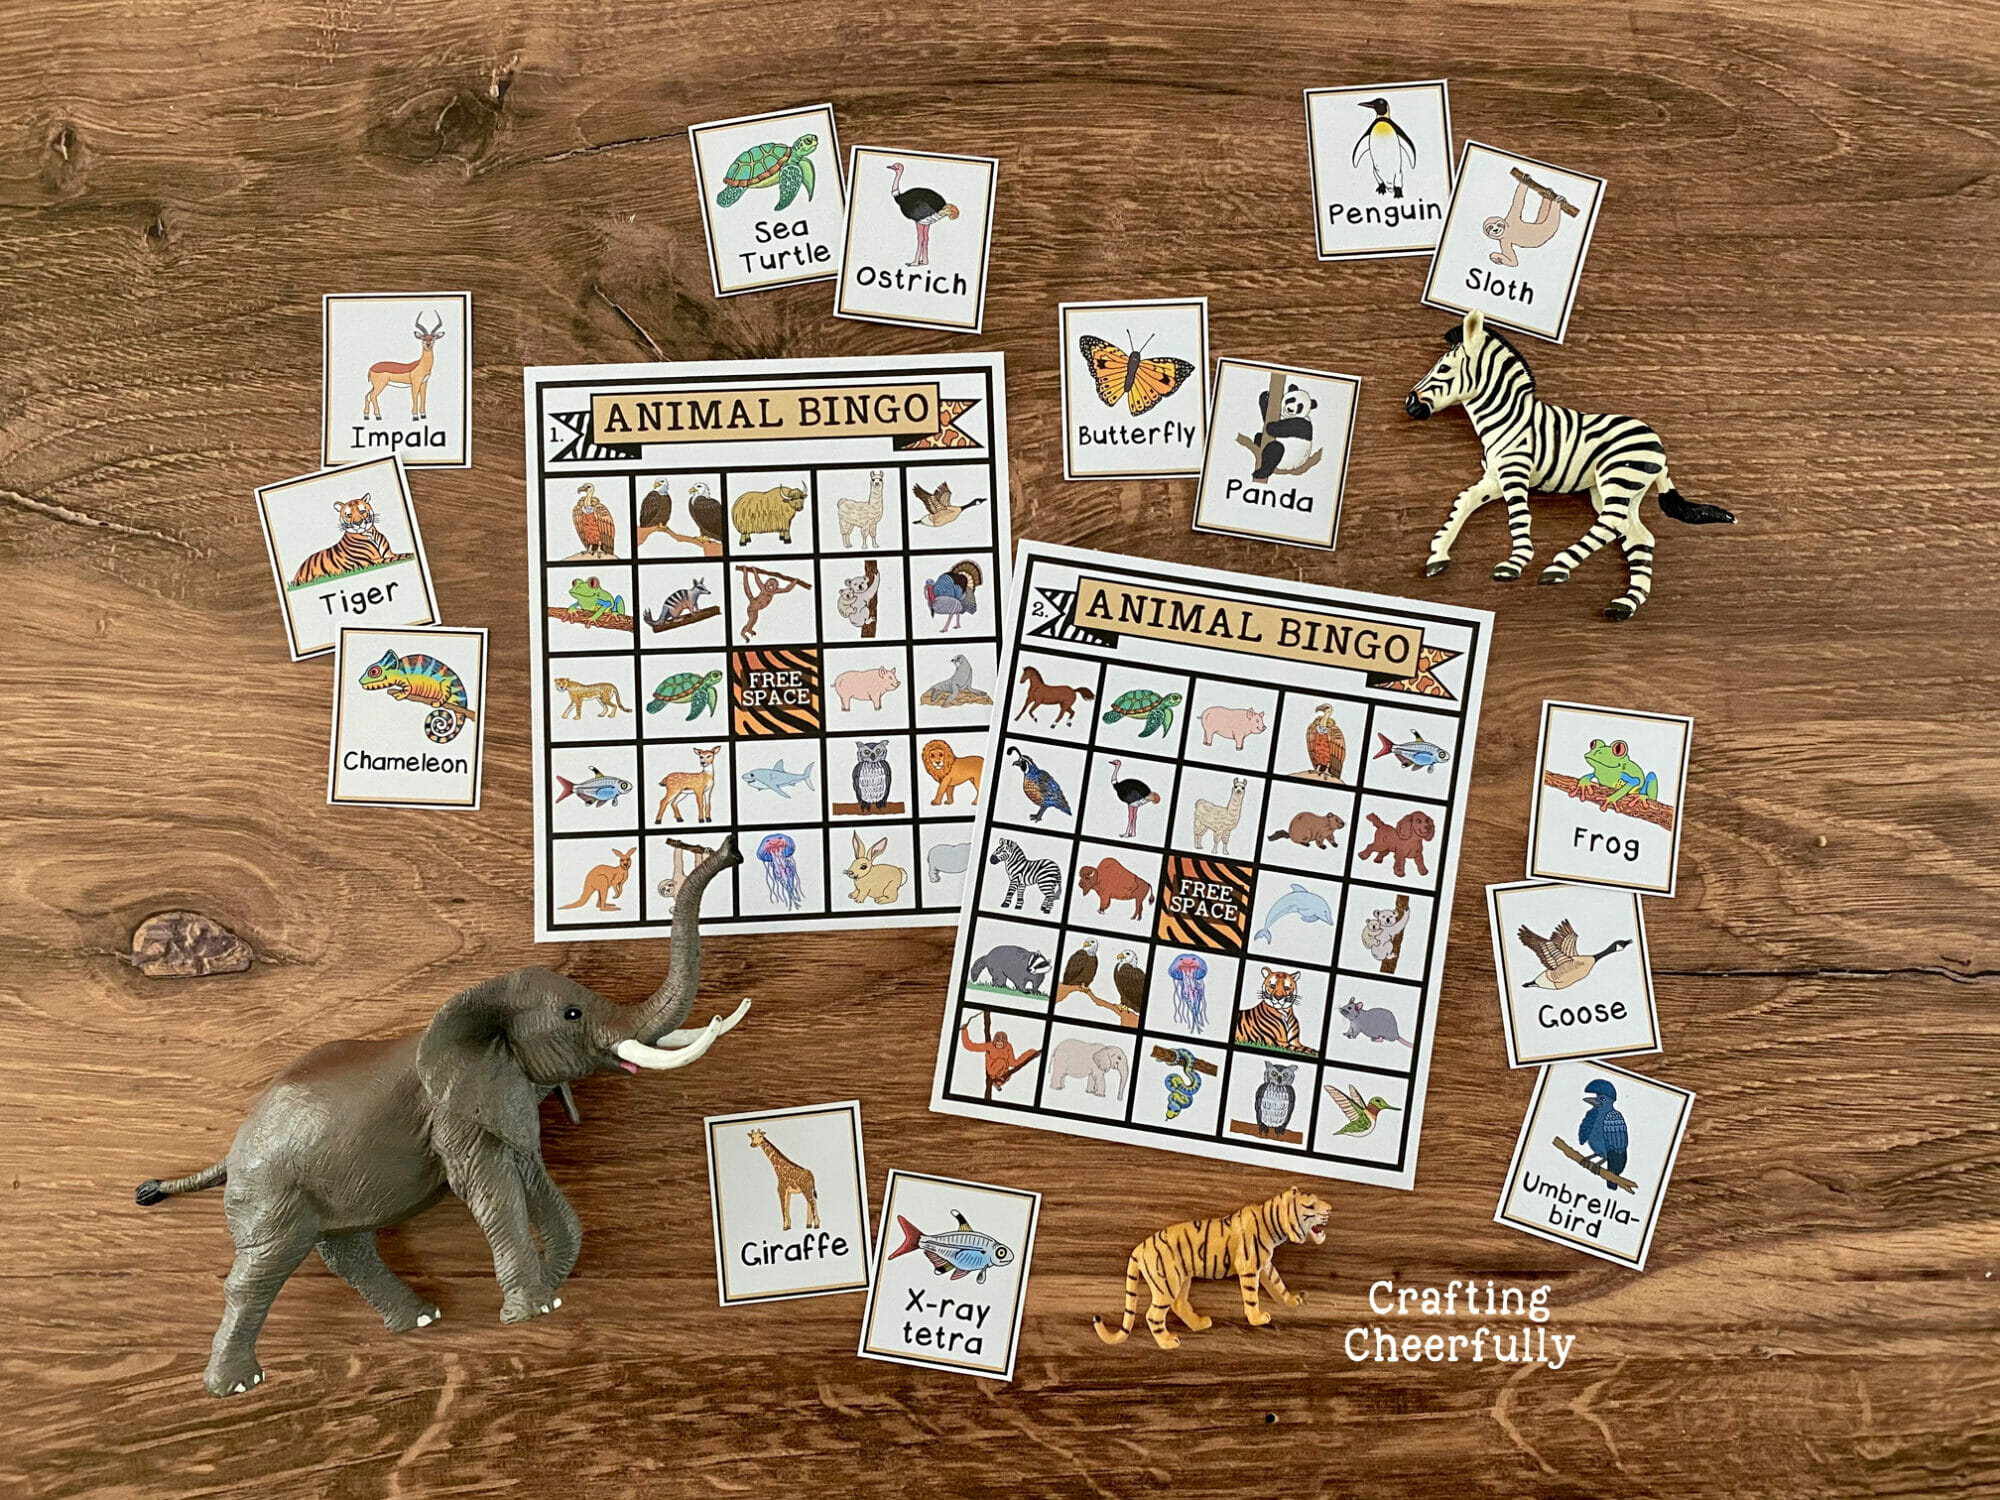 Animal BINGO boards on a wooden surface with calling cards and toy animals laying around them.